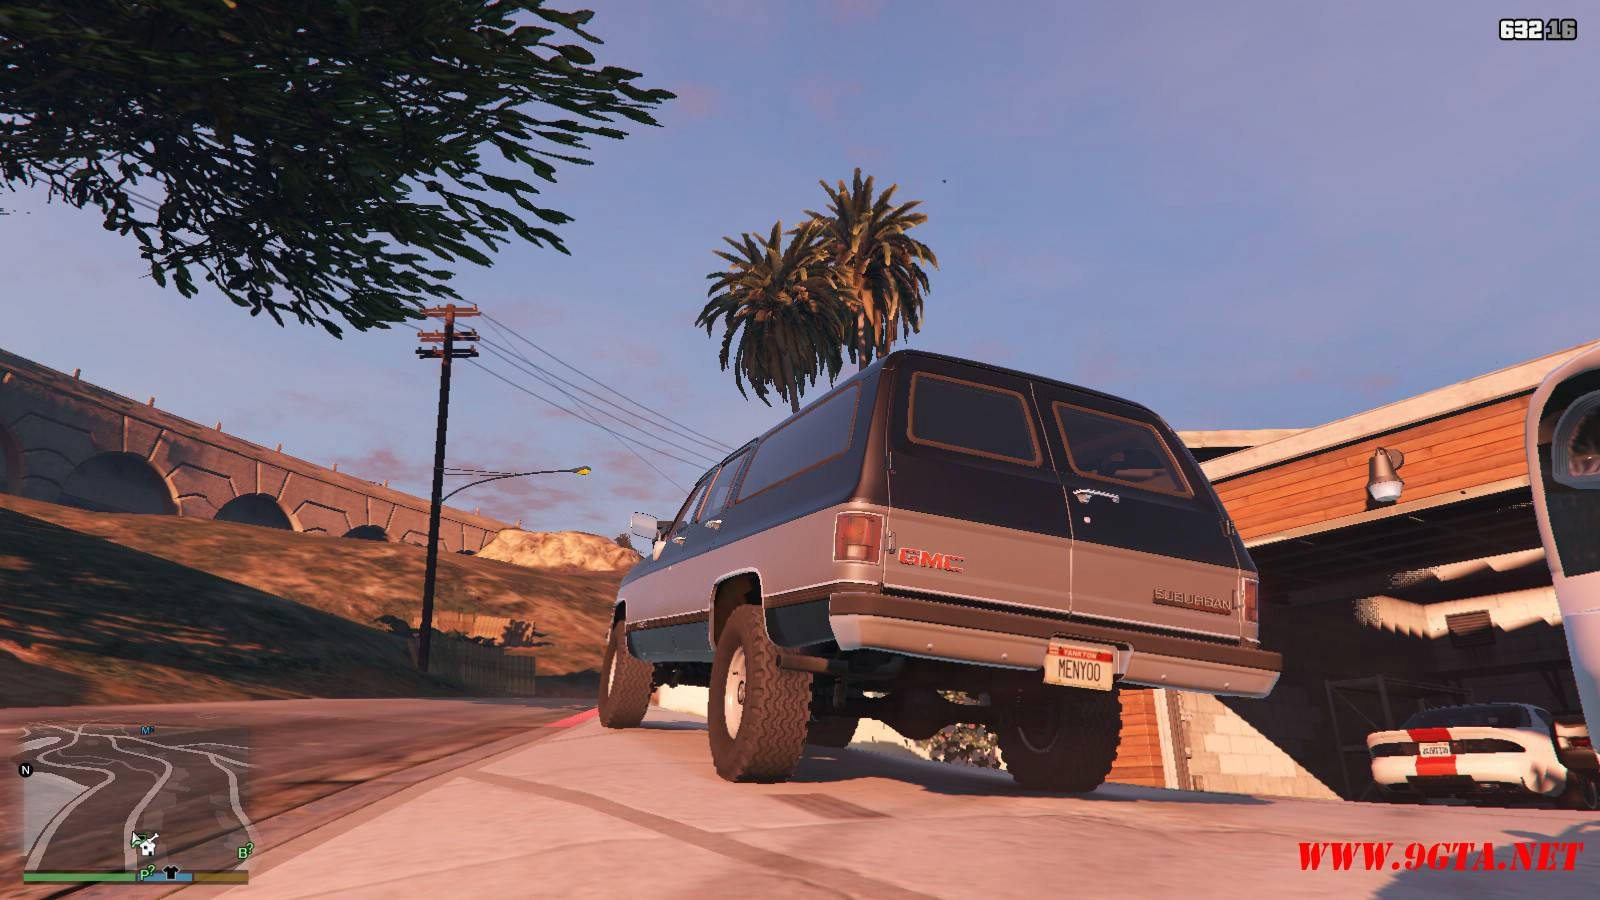 1989 GMC Suburban Mod For GTA 5 (7)